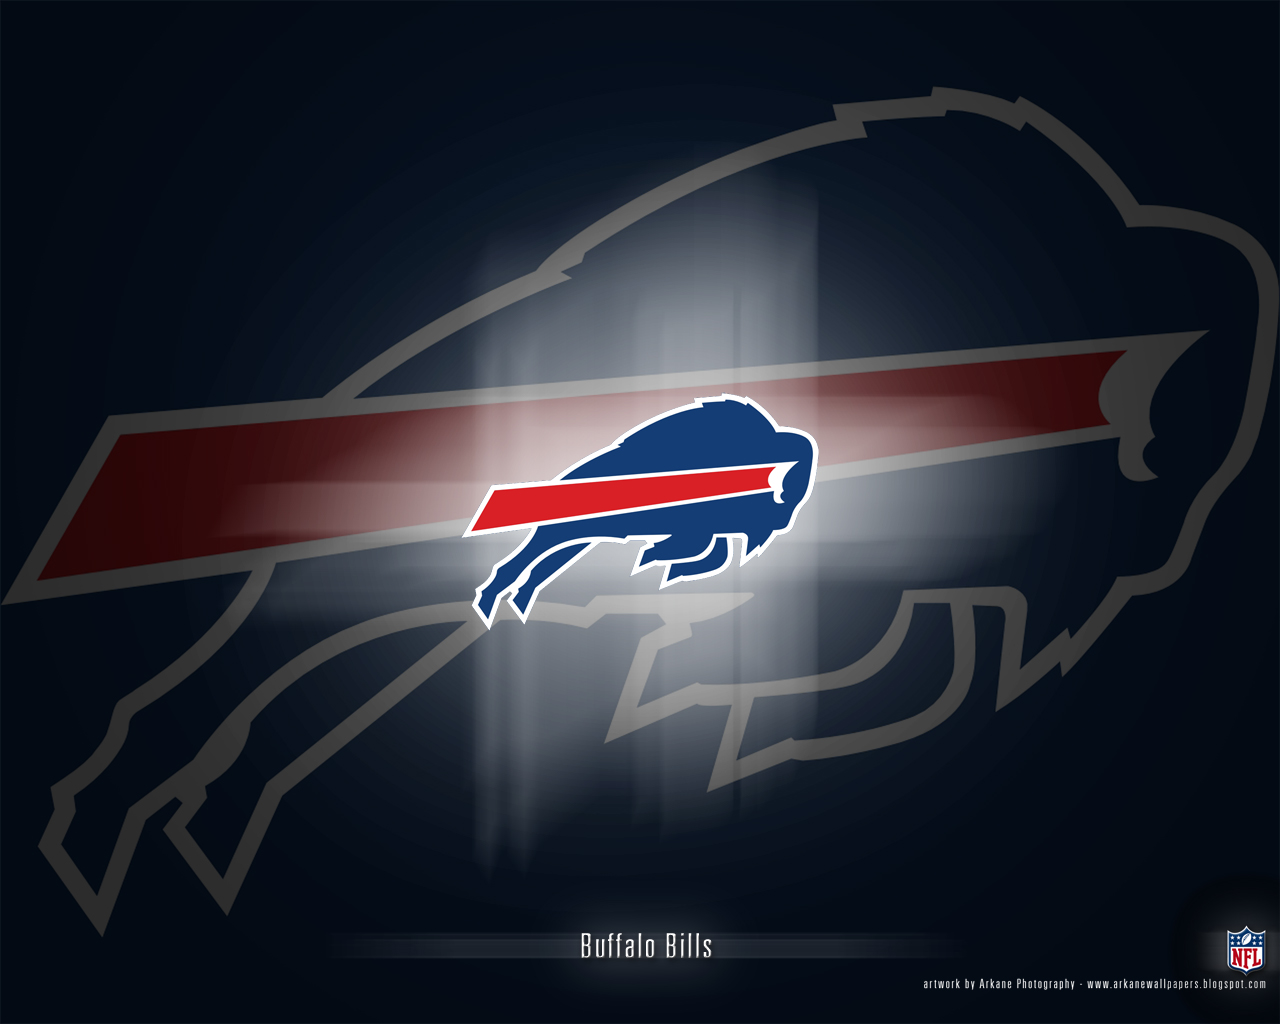 Arkane NFL Wallpapers Buffalo Bills   Vol 1 1280x1024